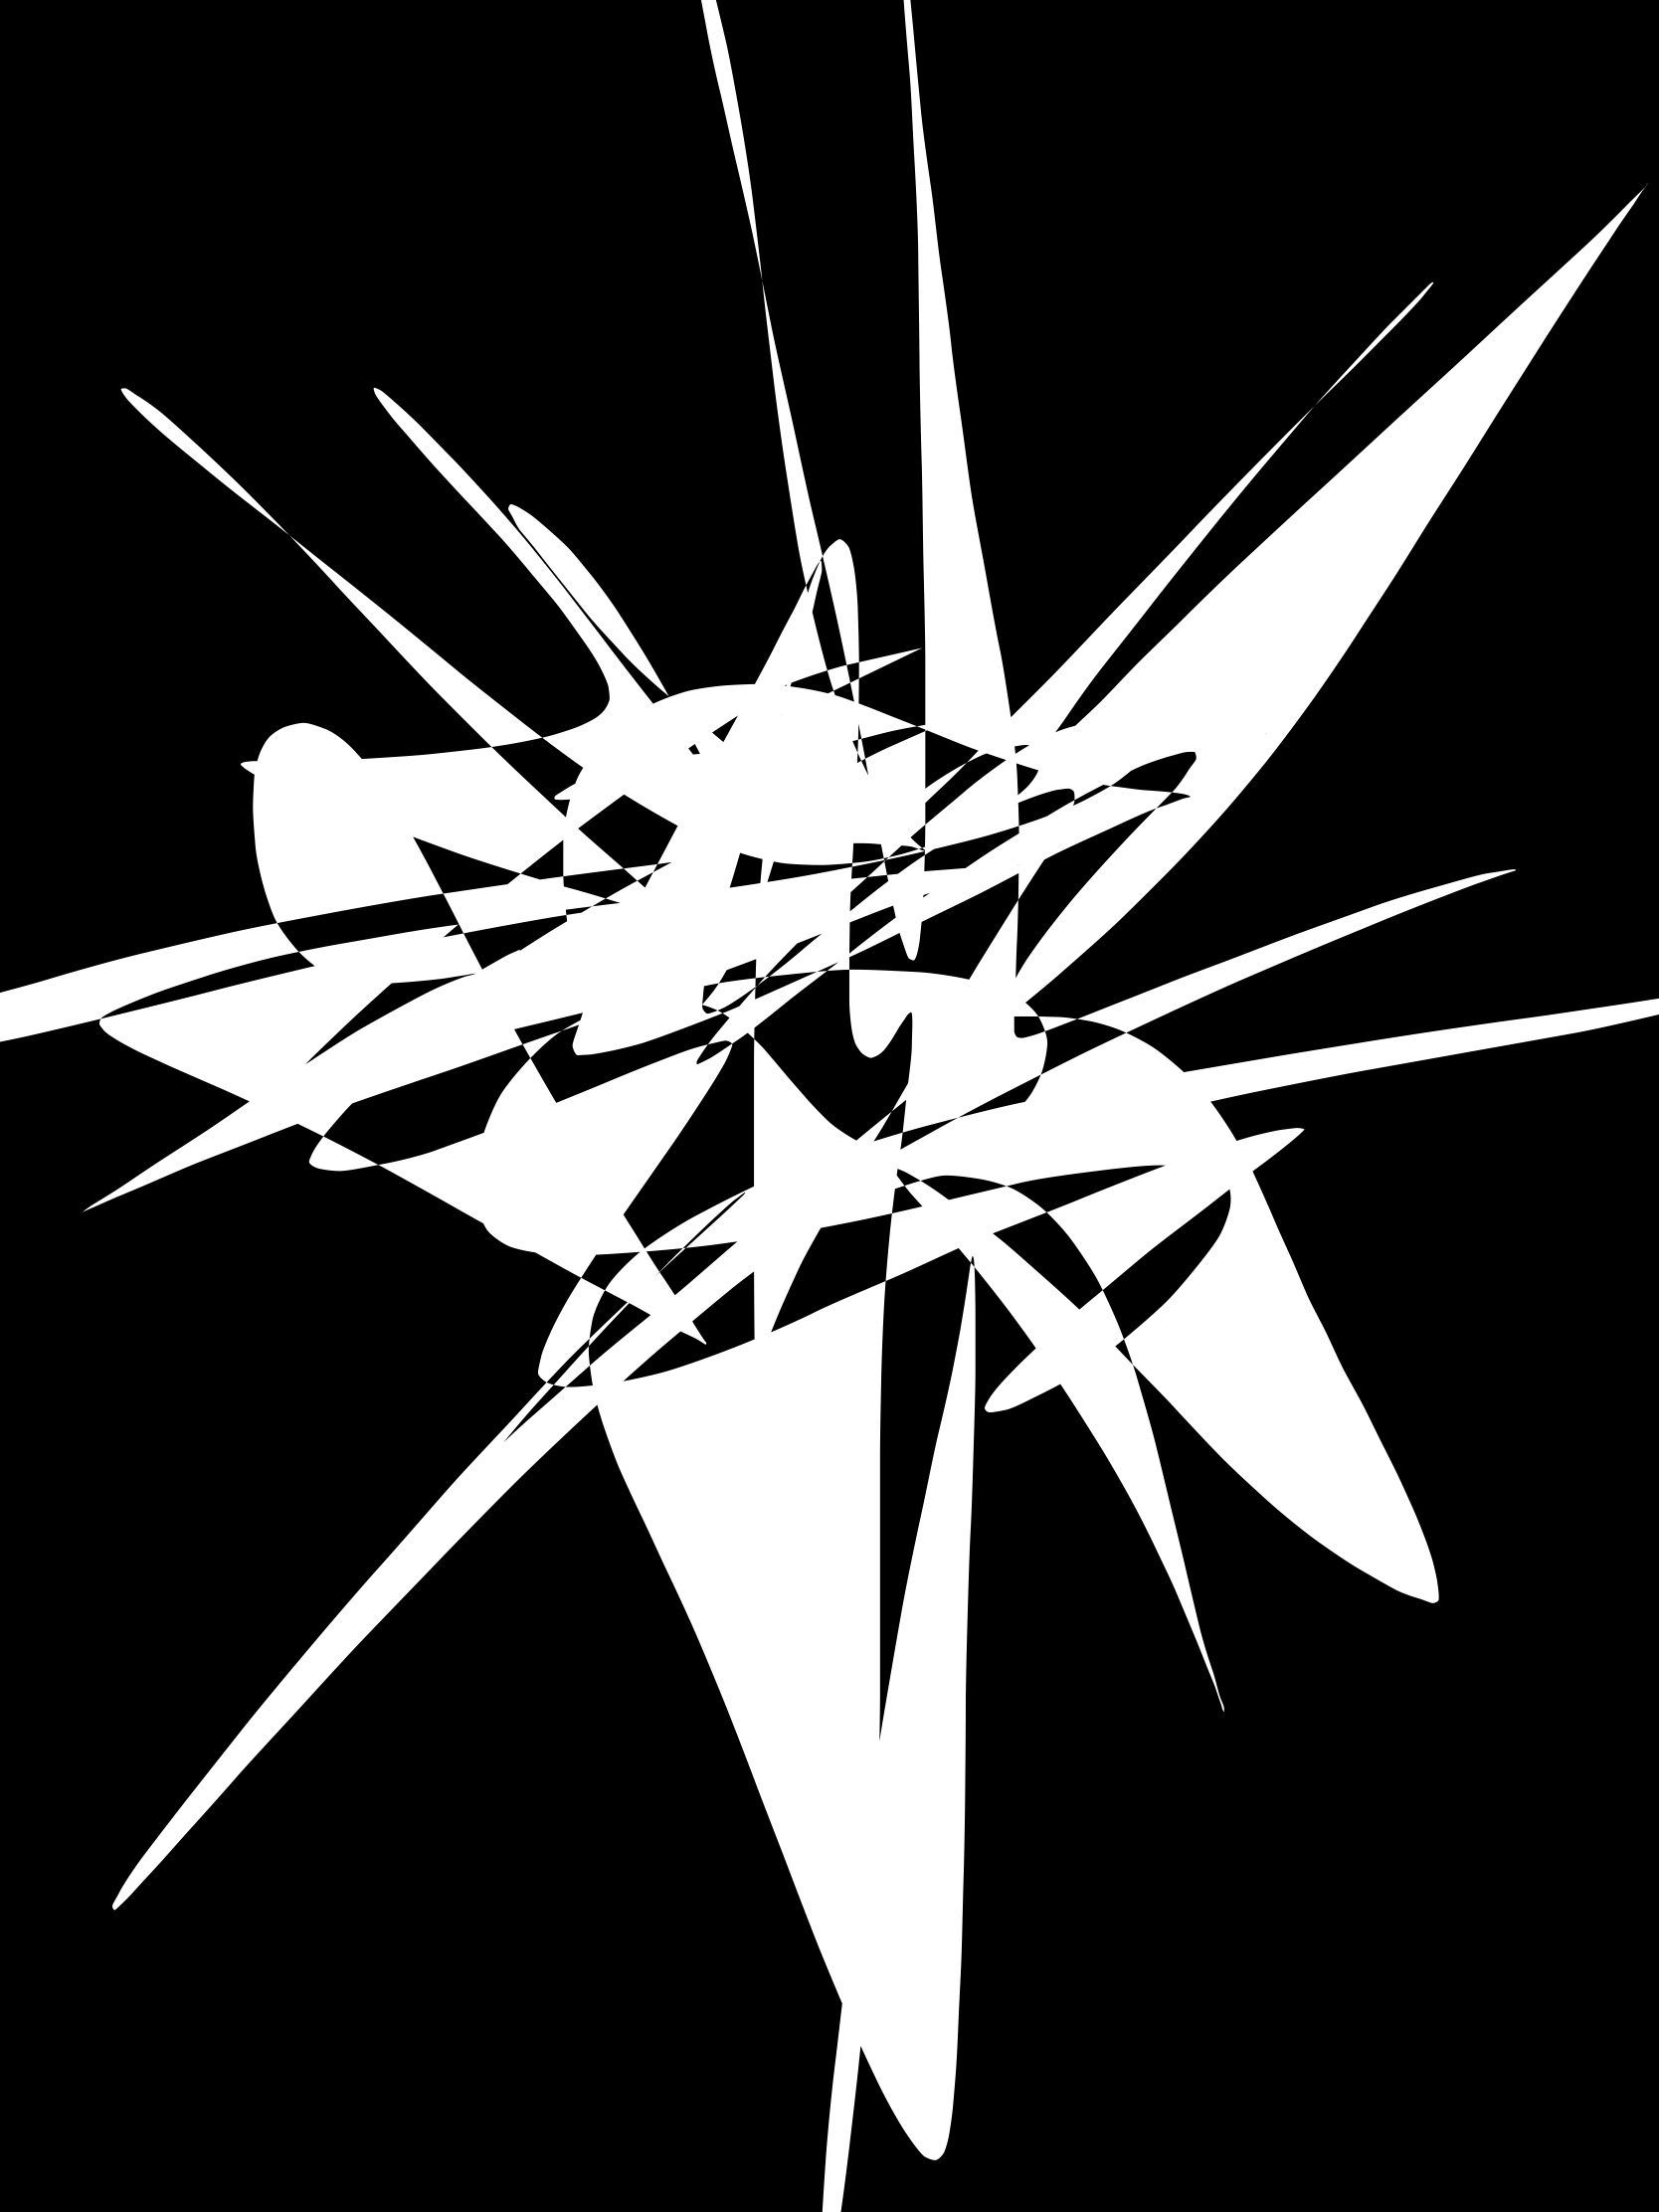 black white abstract explosion ERIC KIM